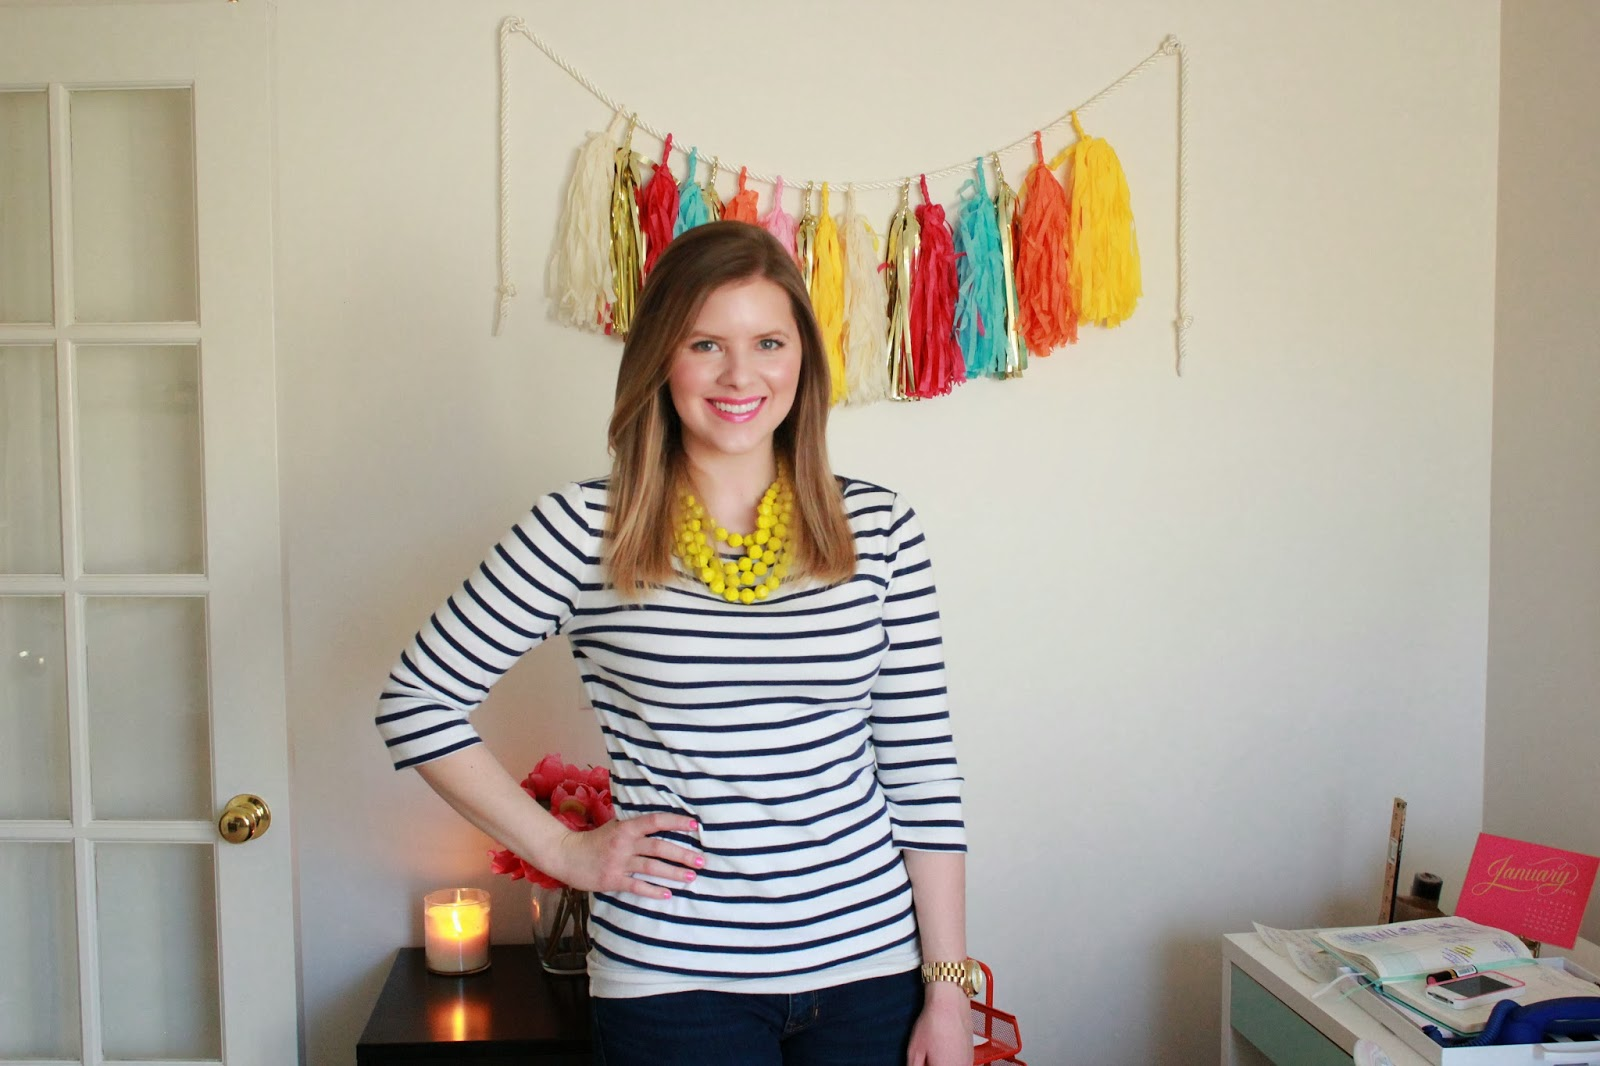 FASHION FRIDAY: STRIPES AND BRIGHTS